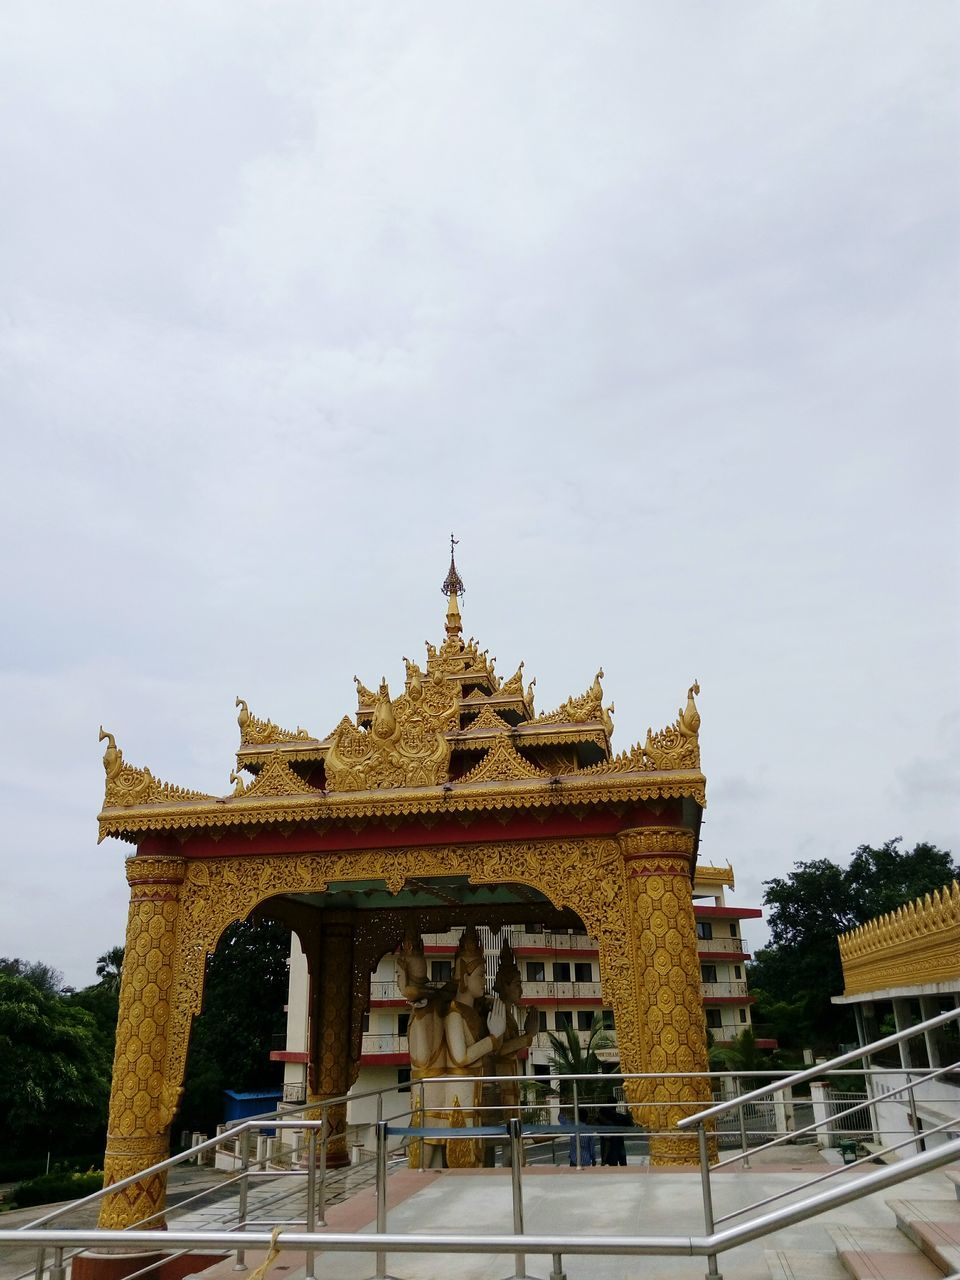 architecture, built structure, religion, building exterior, low angle view, travel destinations, gold colored, place of worship, sky, day, spirituality, sculpture, statue, outdoors, tree, no people, nature